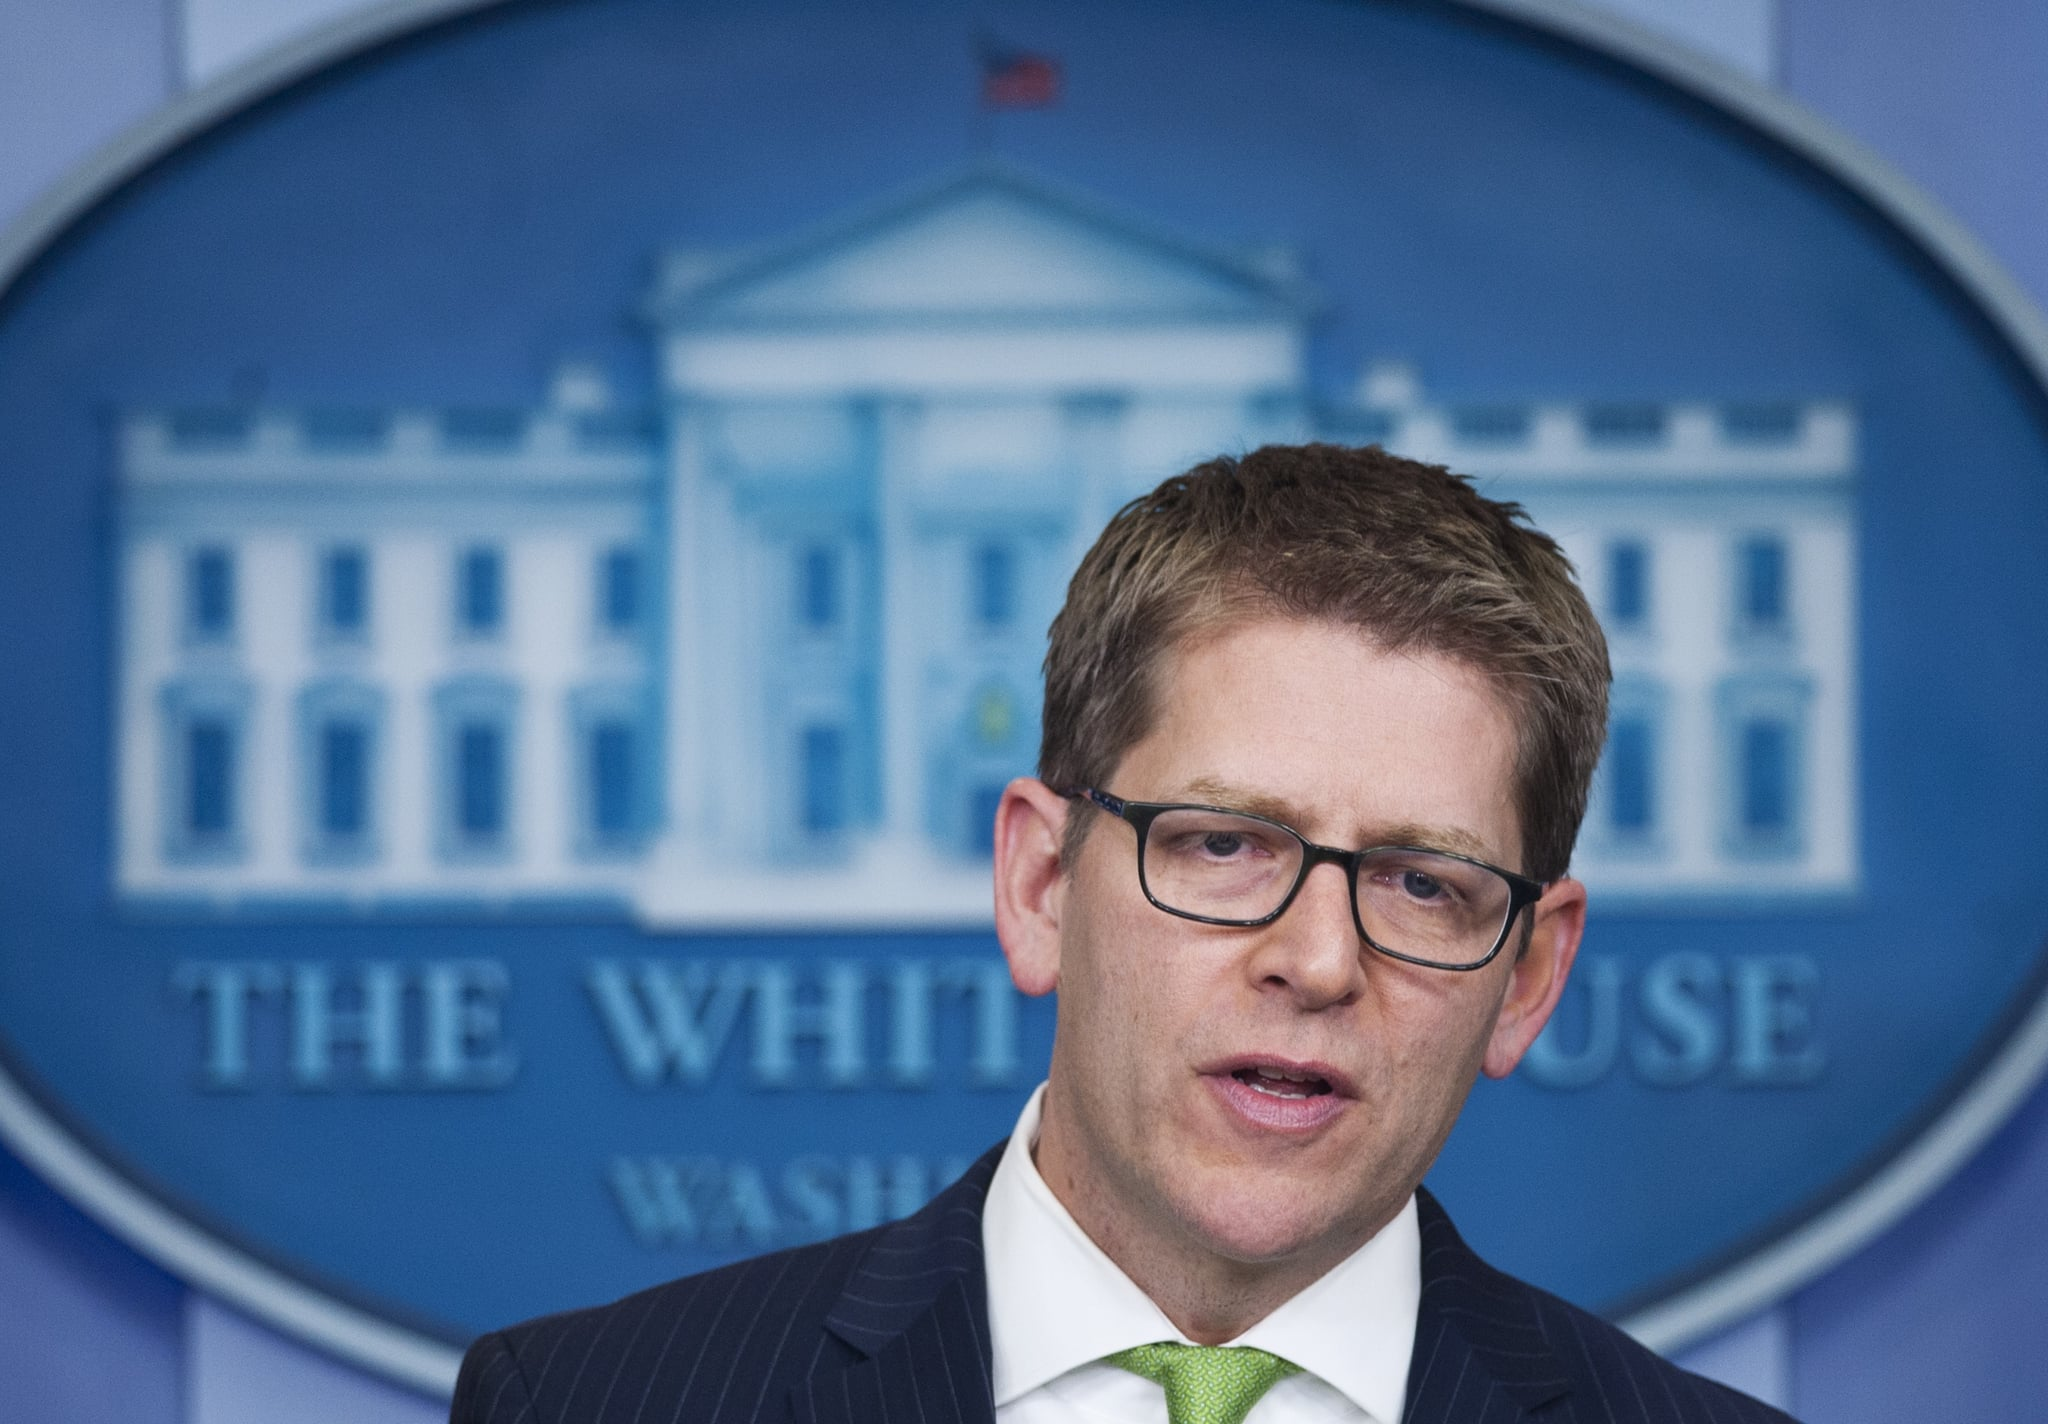 White House Press Secretary Jay Carney answered a question about the investigation on Friday.